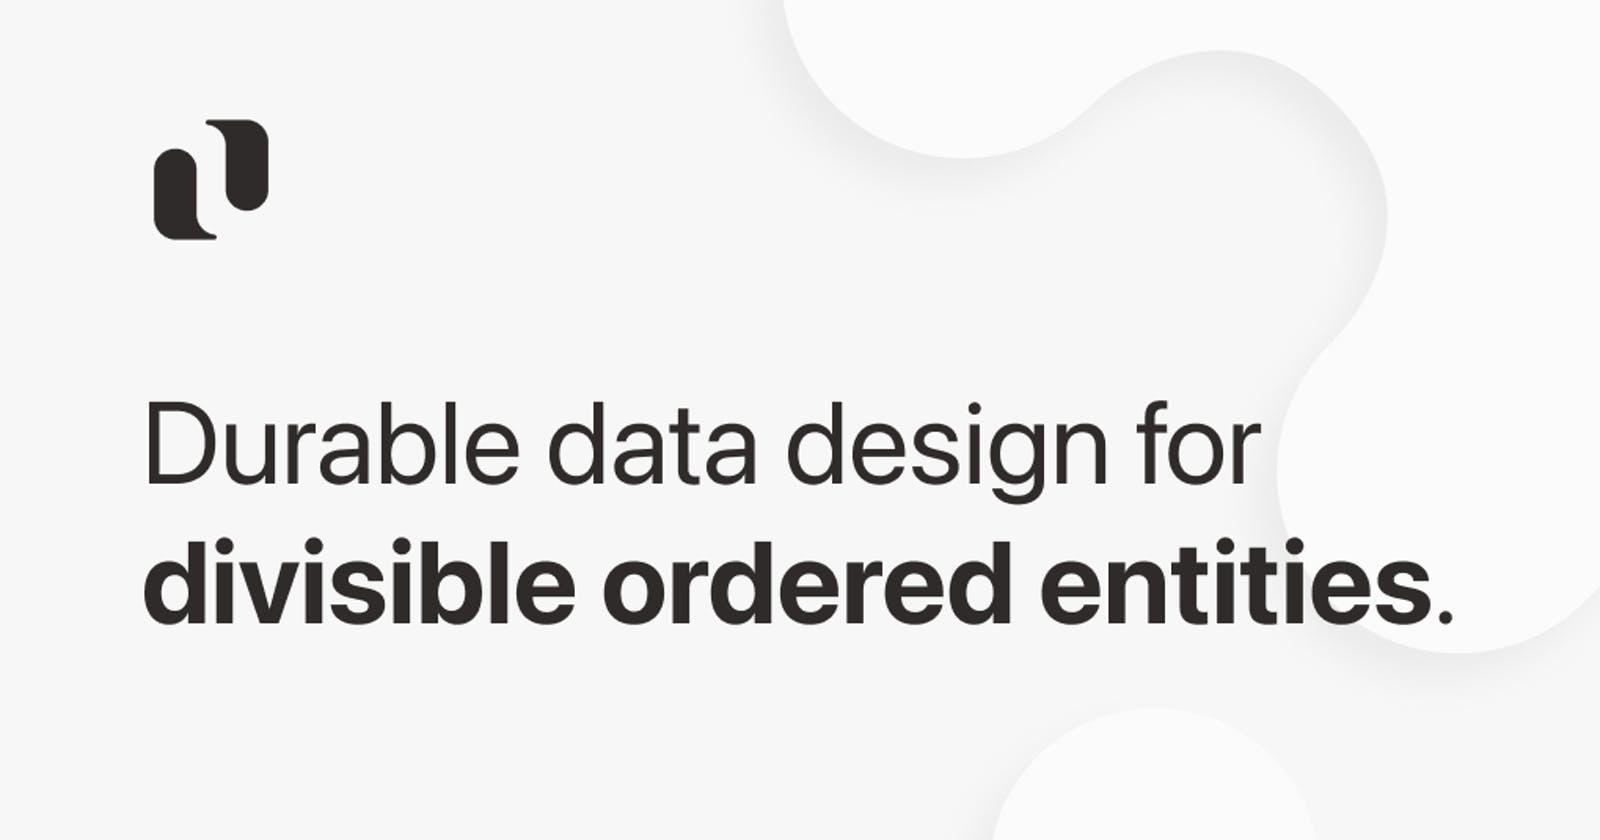 Durable data design for divisible ordered entities.